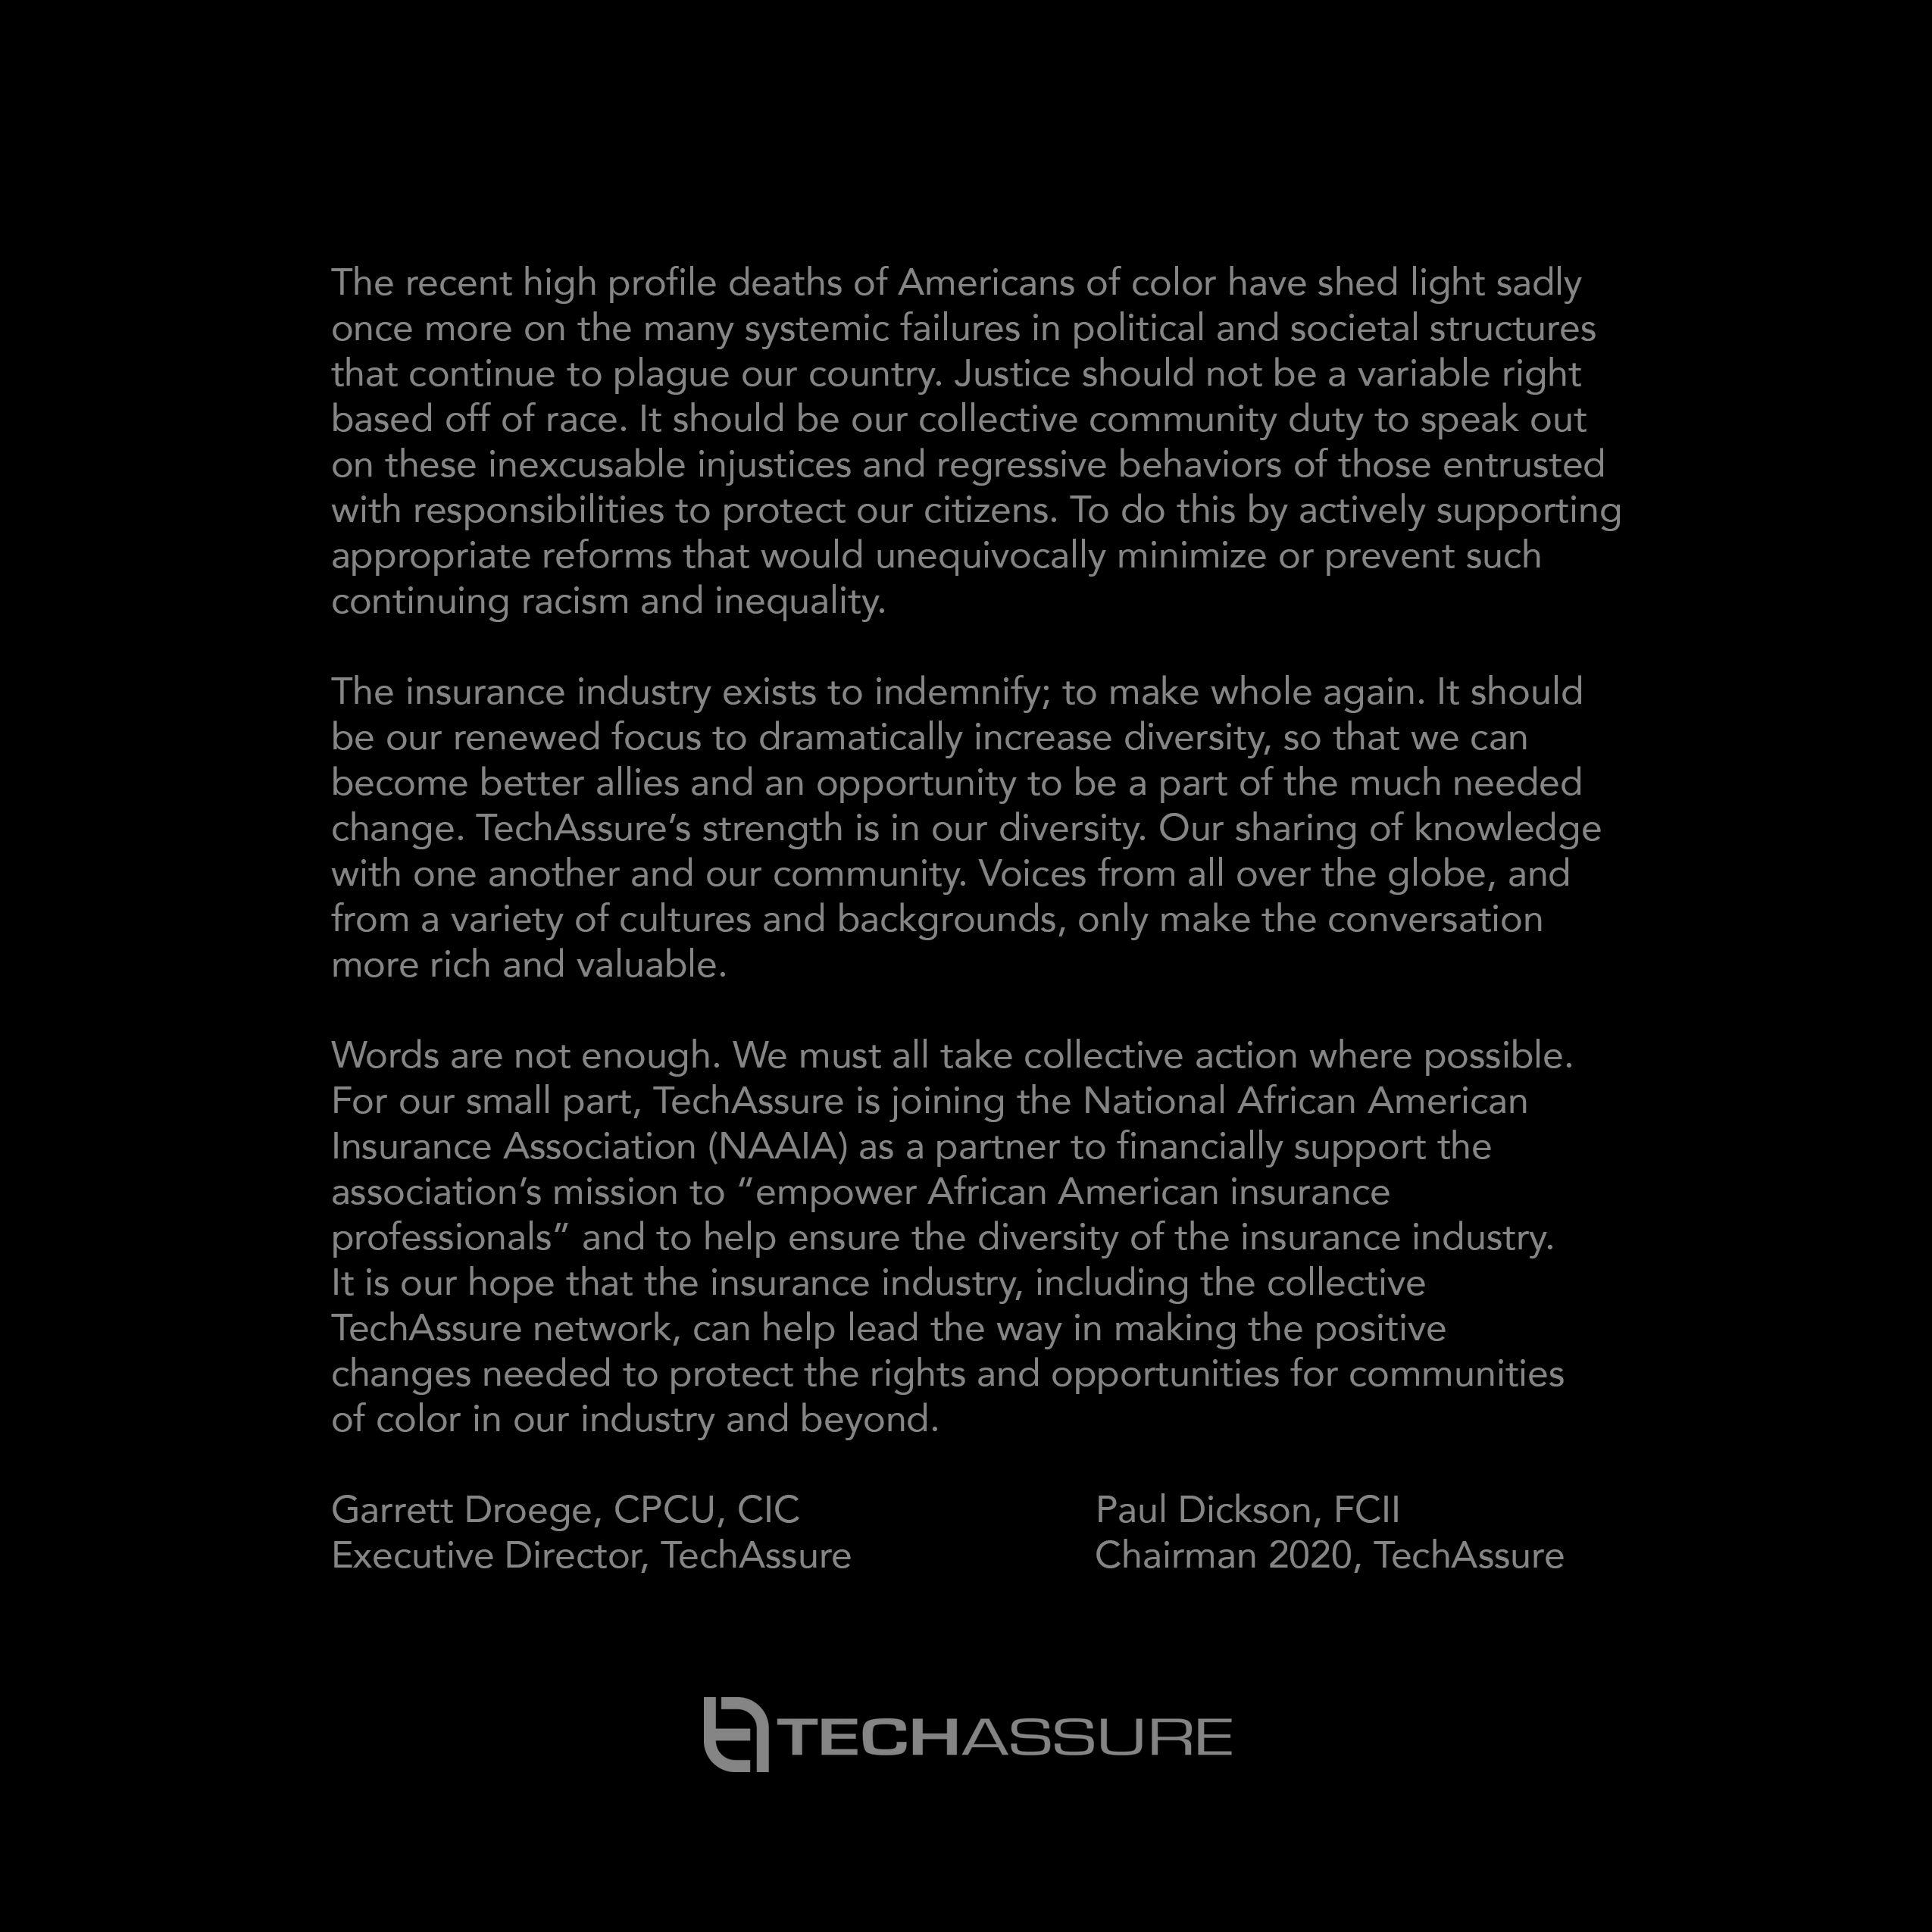 TechAssure Stands for Equality